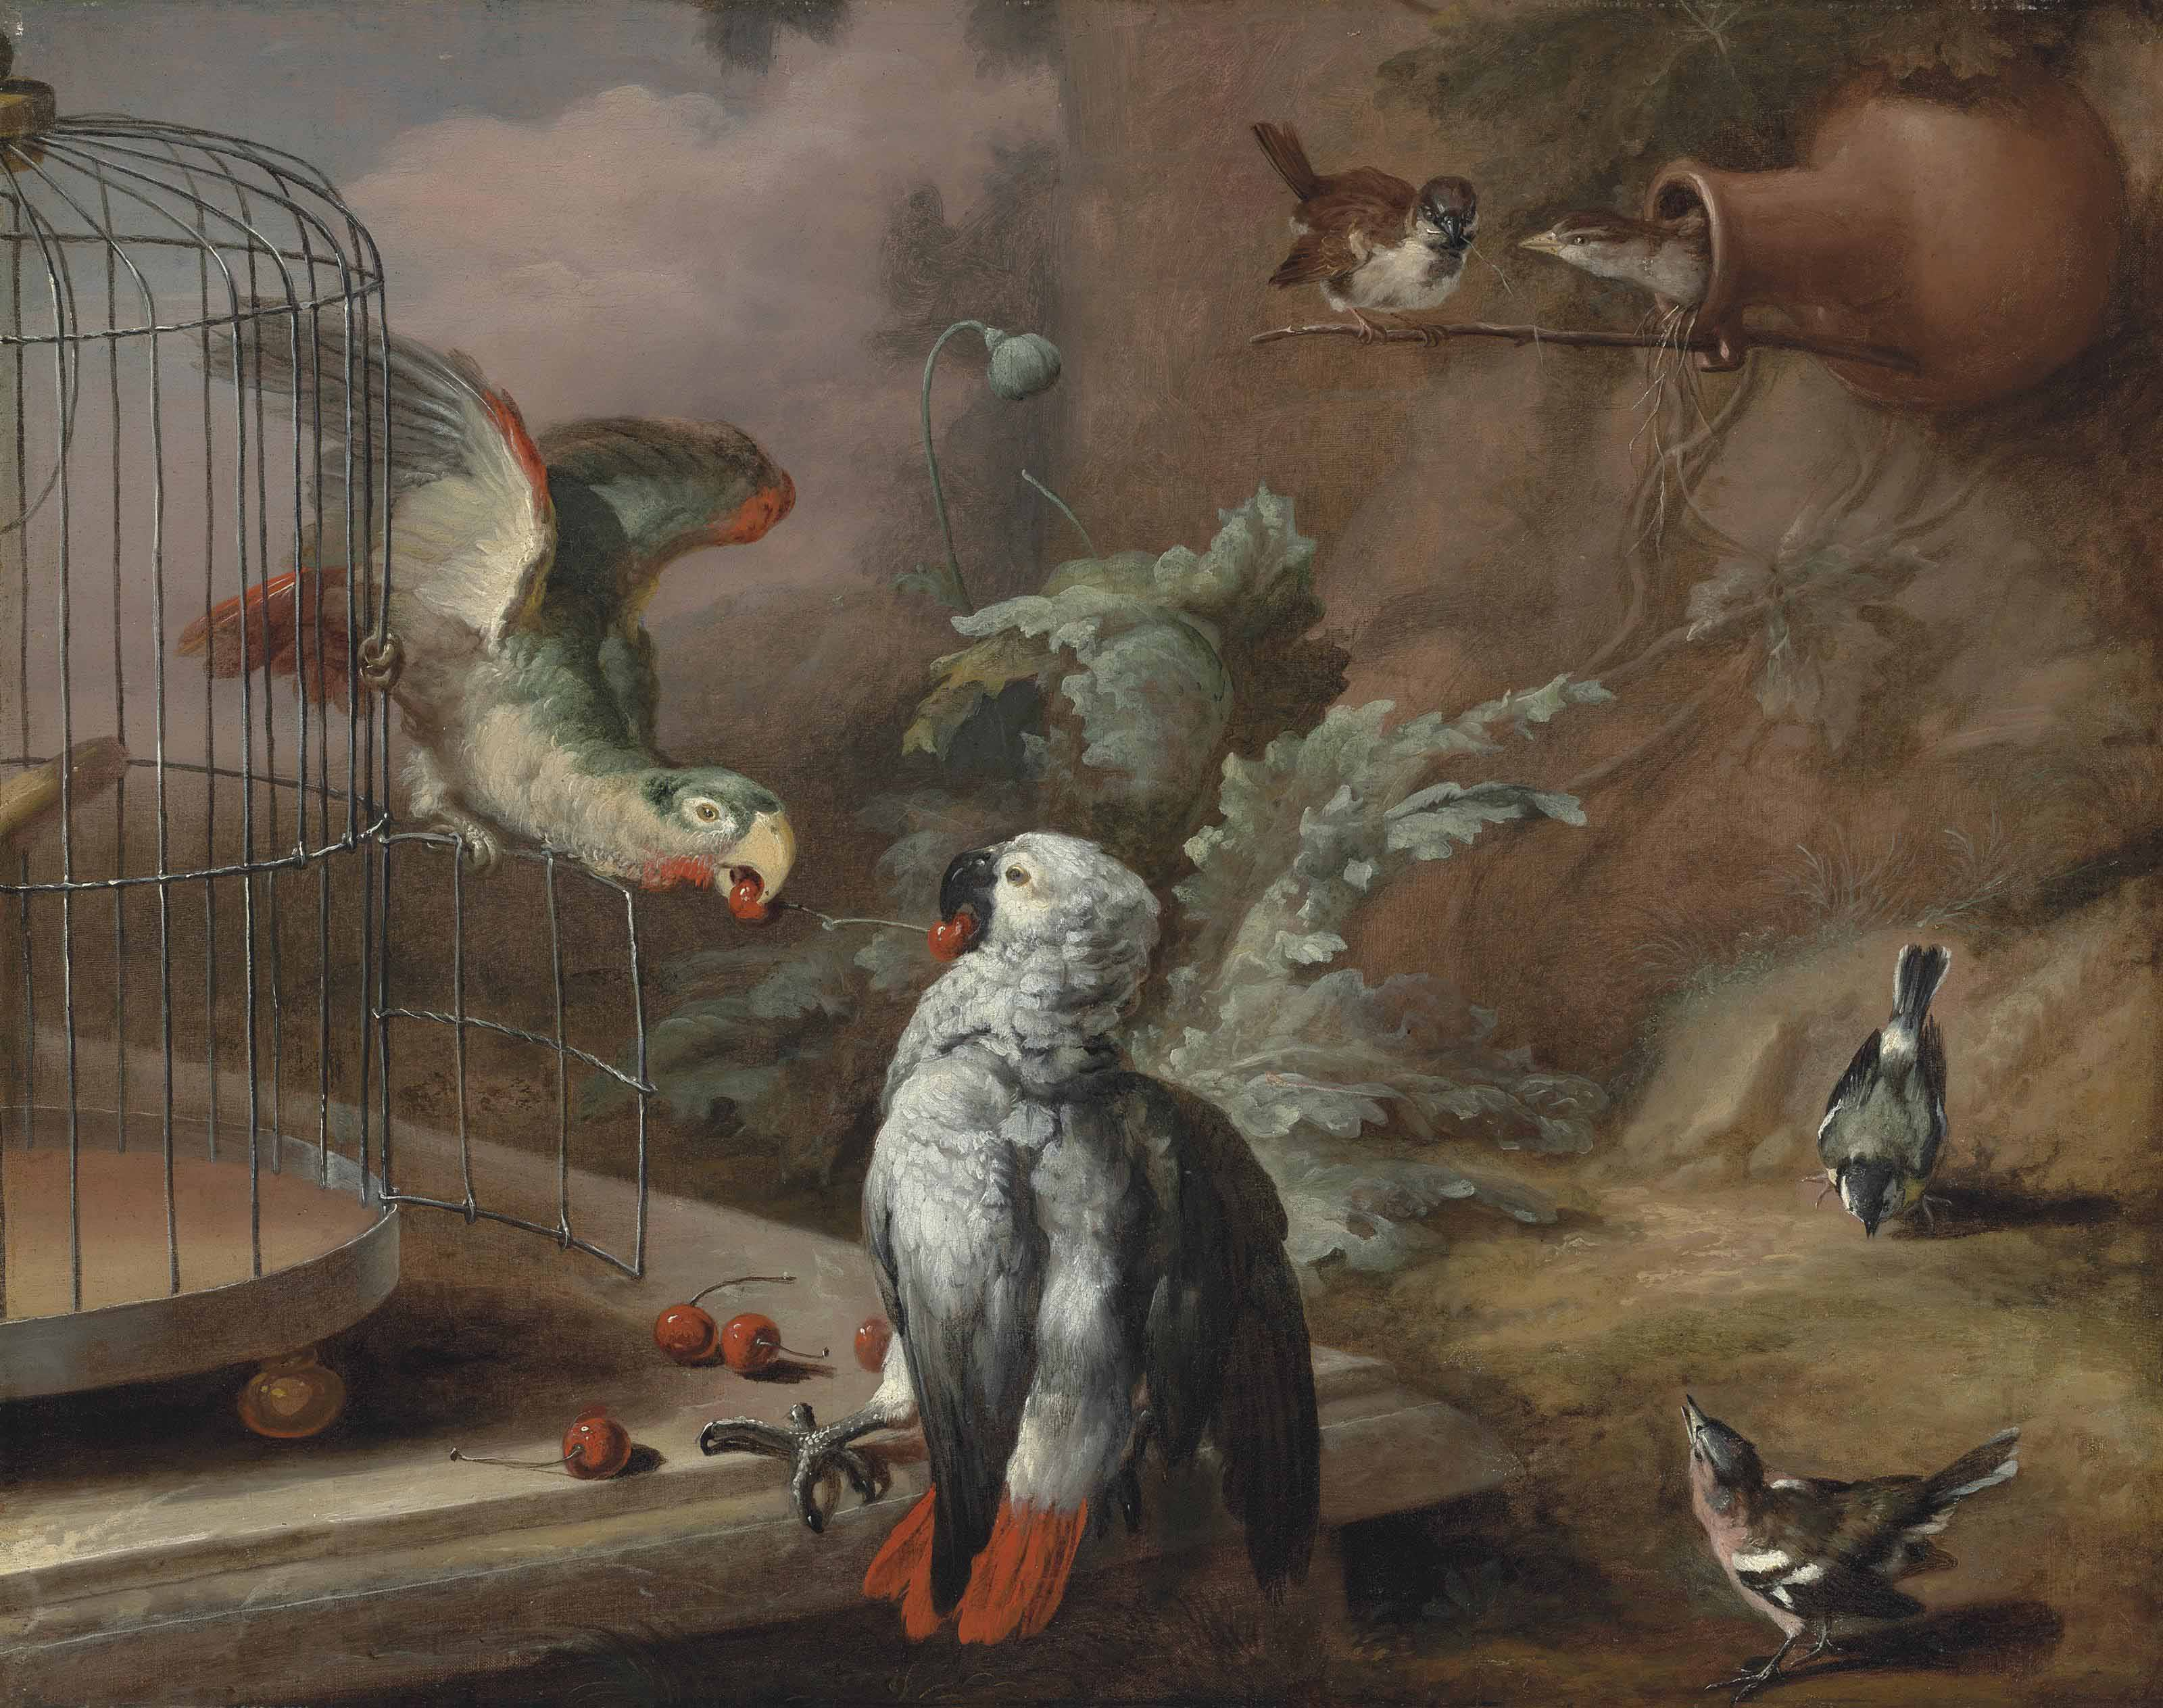 A grey parrot and an Amazon parrot with cherries by a cage on a marble ledge, with sparrows and other songbirds in a landscape